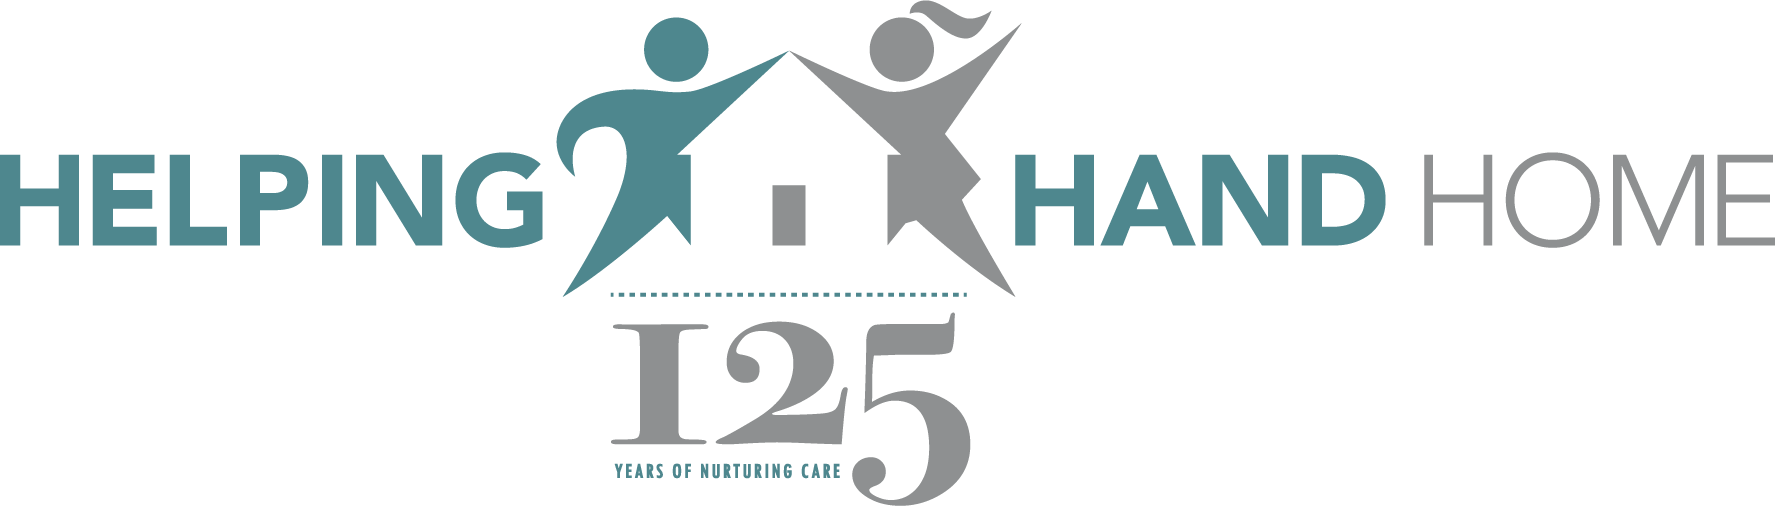 Helping Hands Home